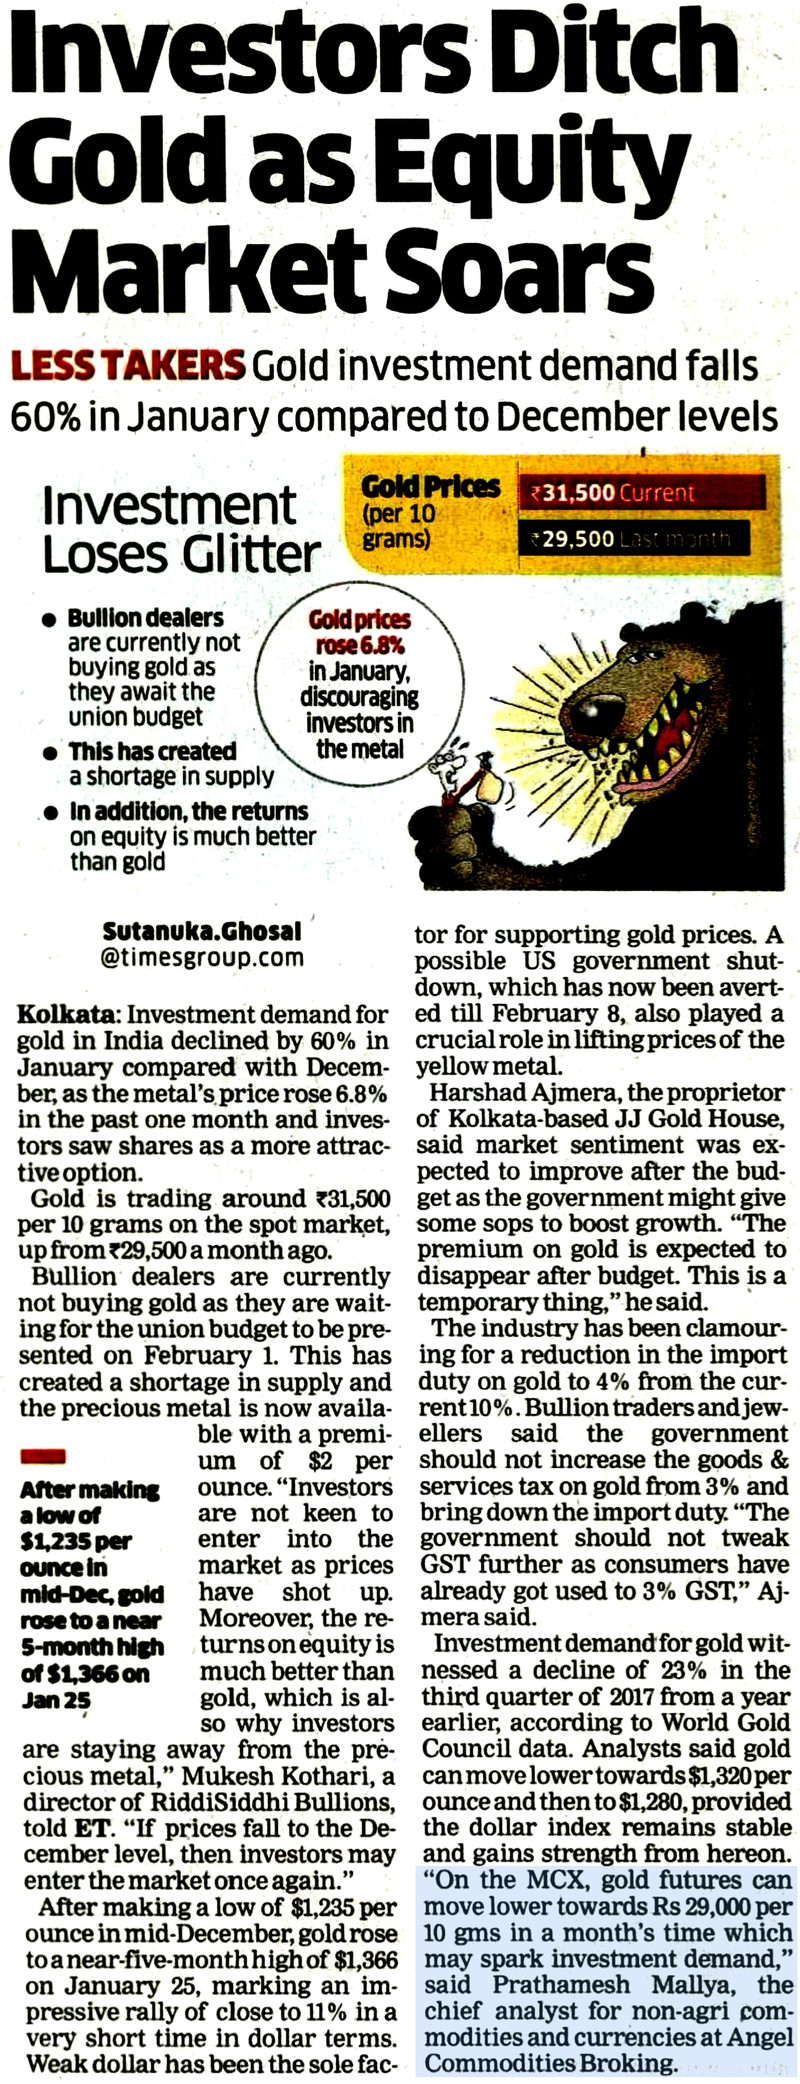 Investors Ditch Gold as Equity Market Soars